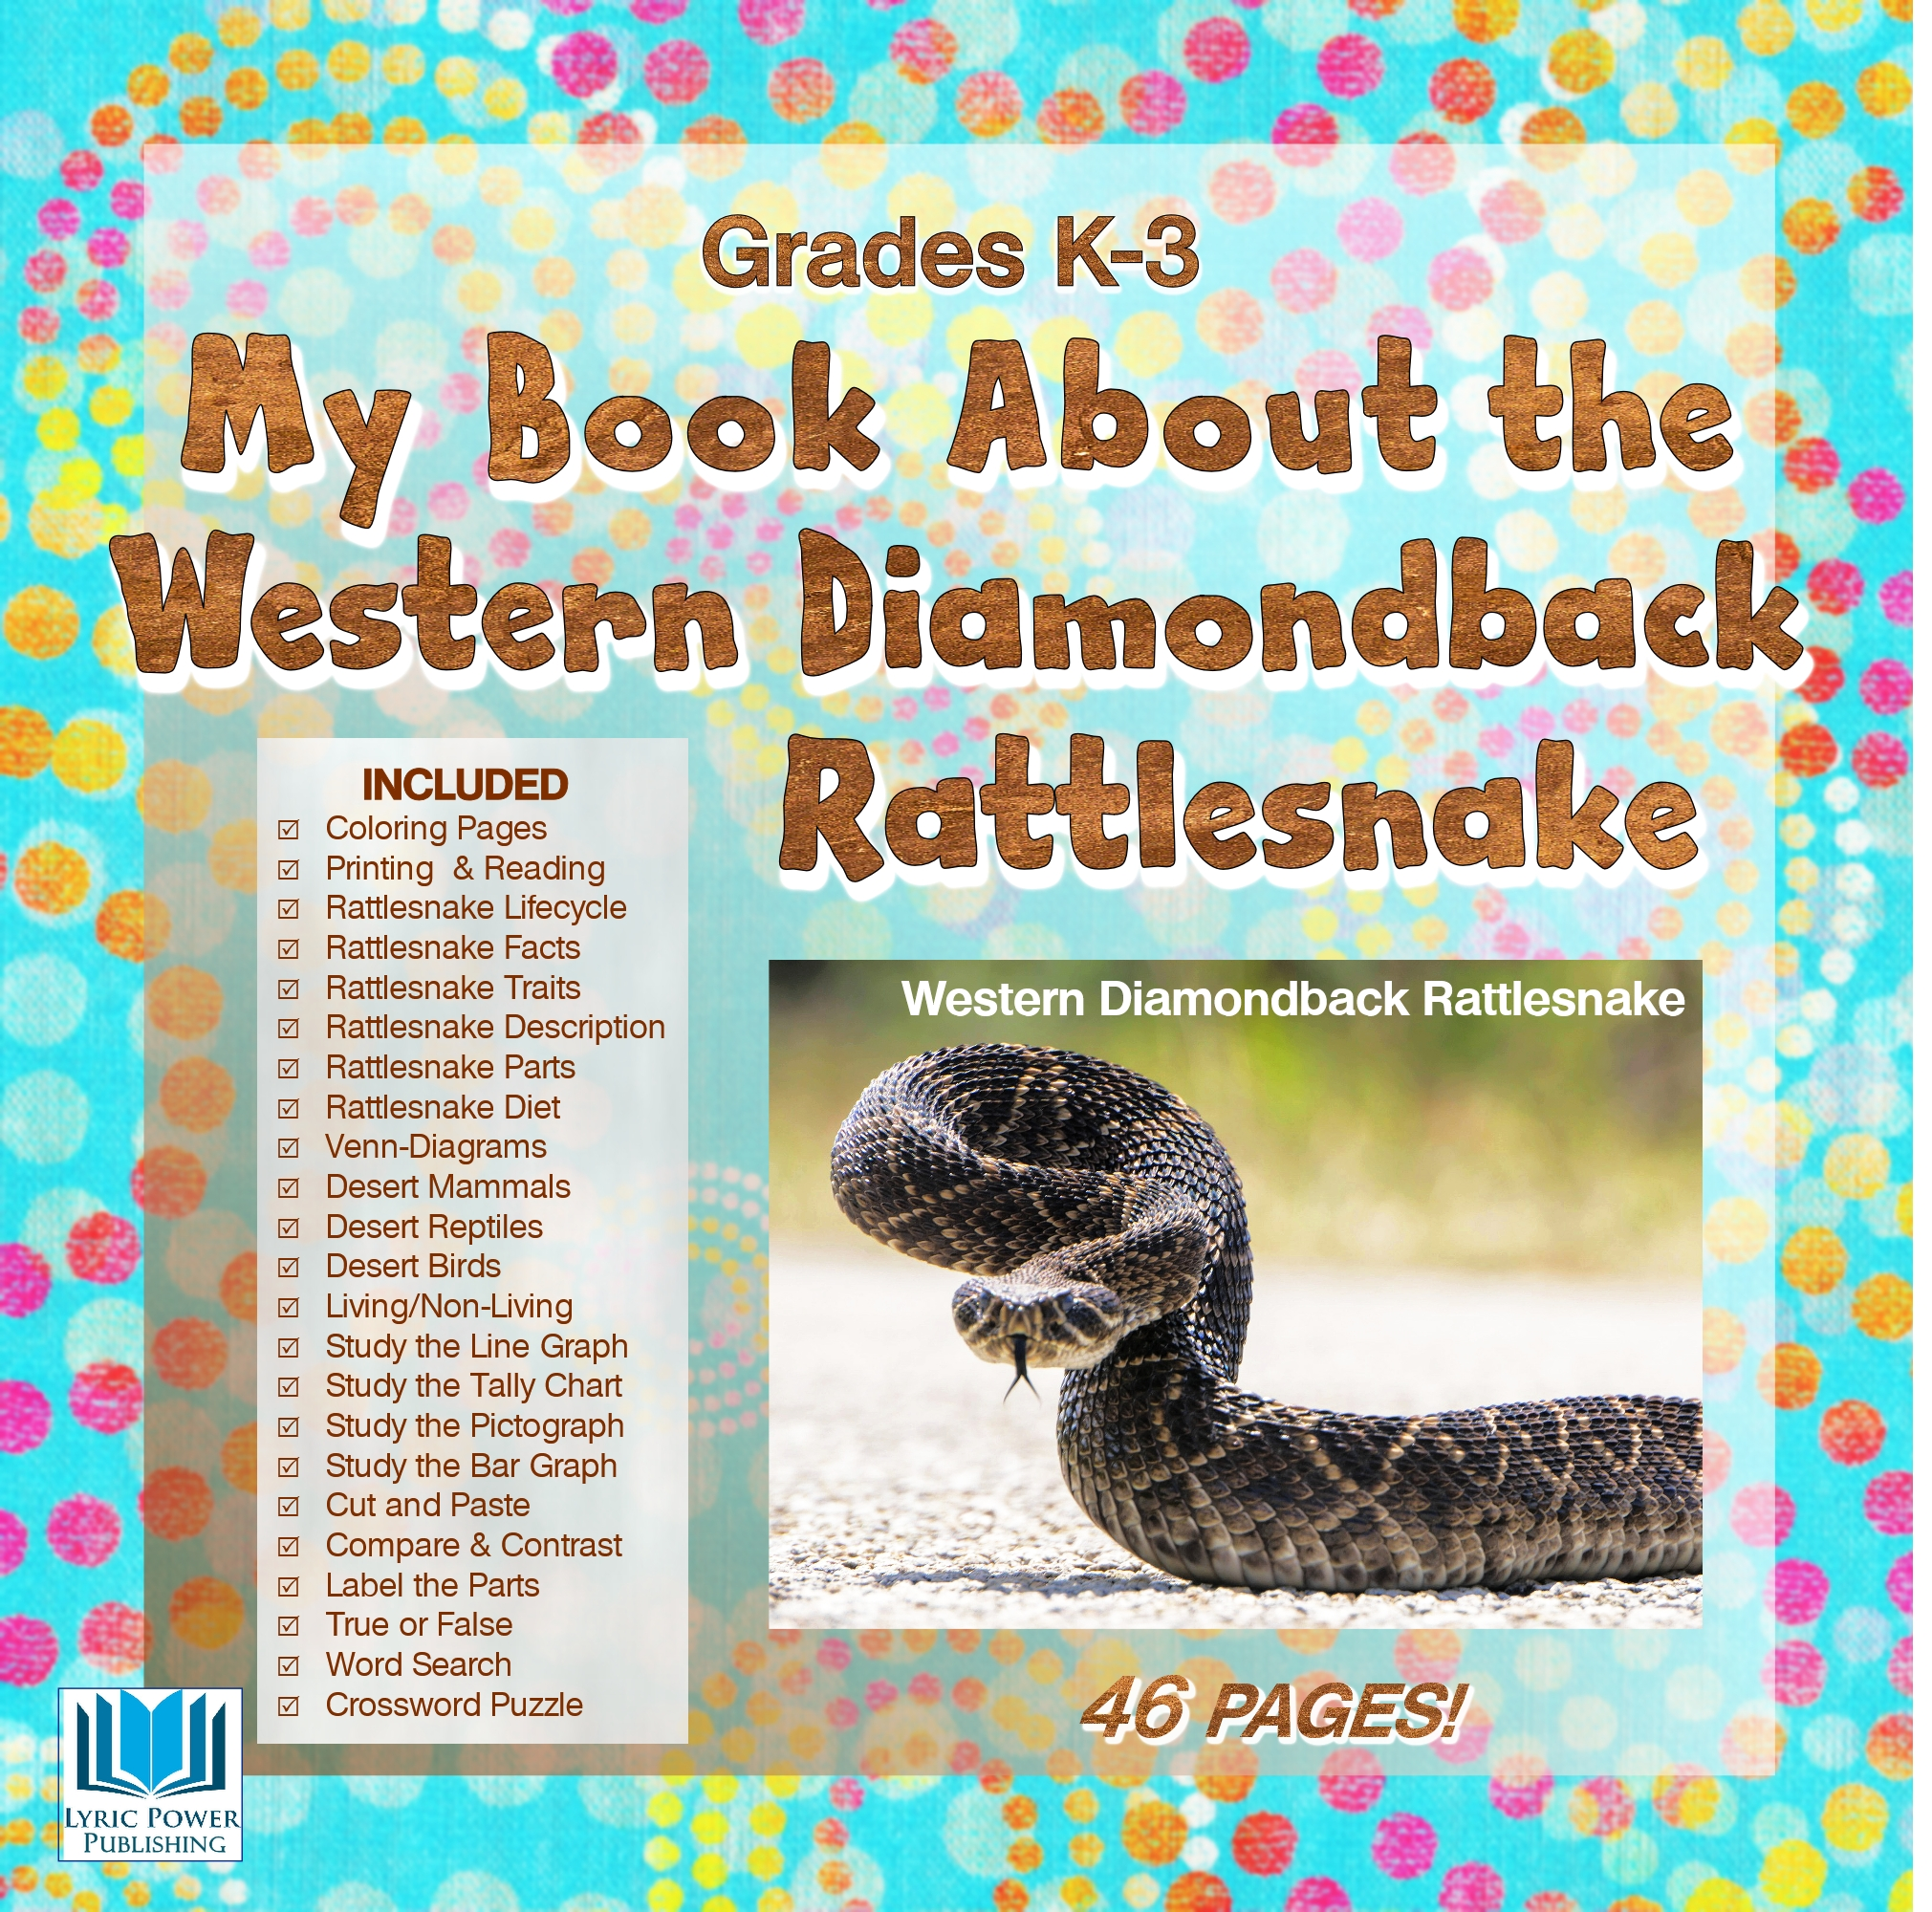 a white and light blue book cover with an image of a western diamondback rattlesnake